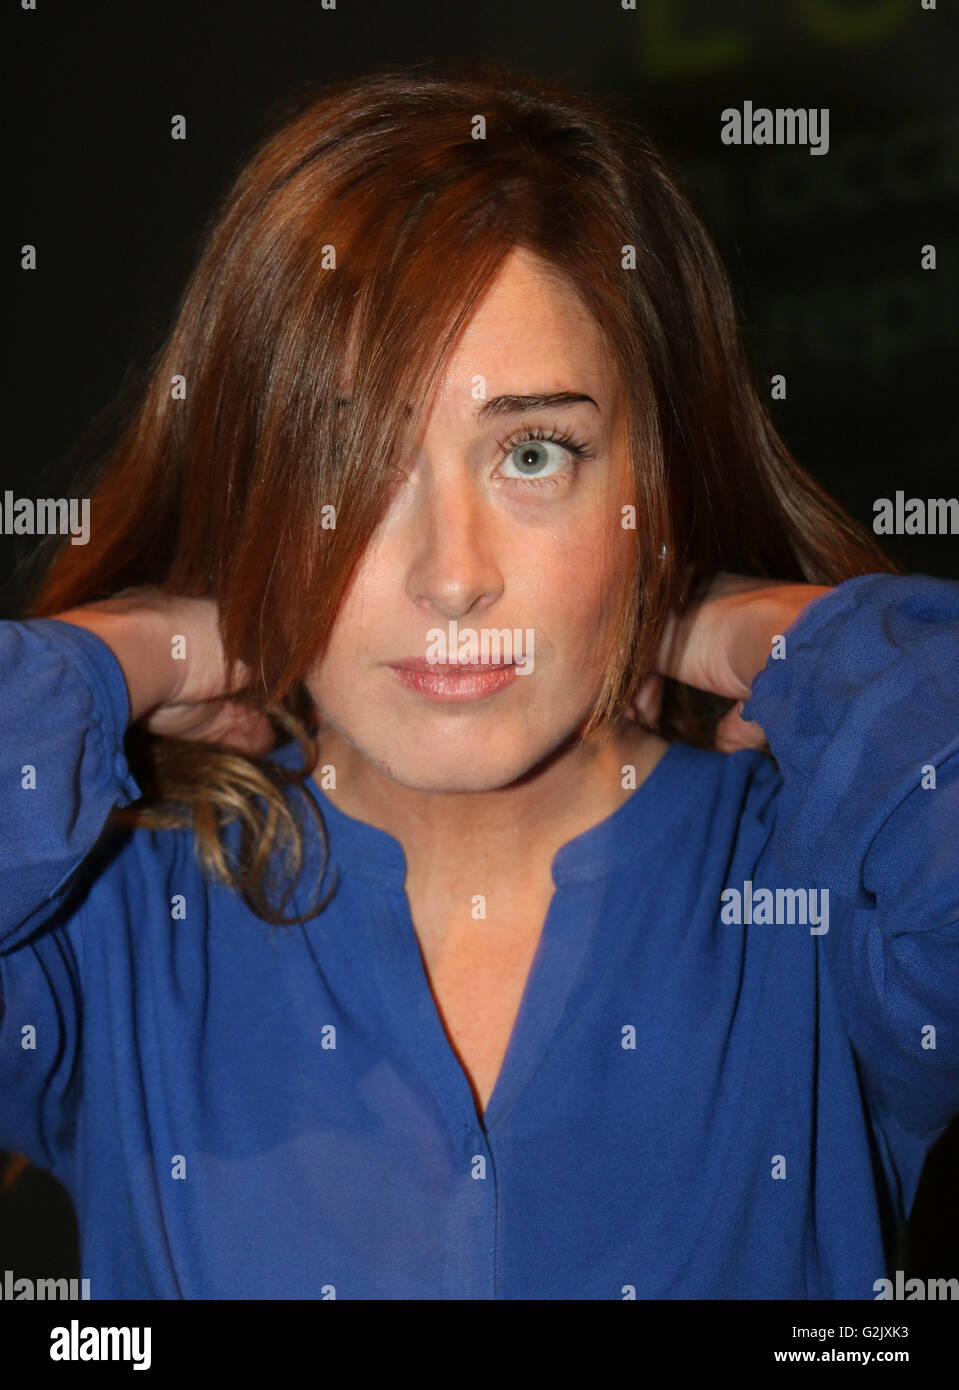 Maria Elena Boschi High Resolution Stock Photography and ...